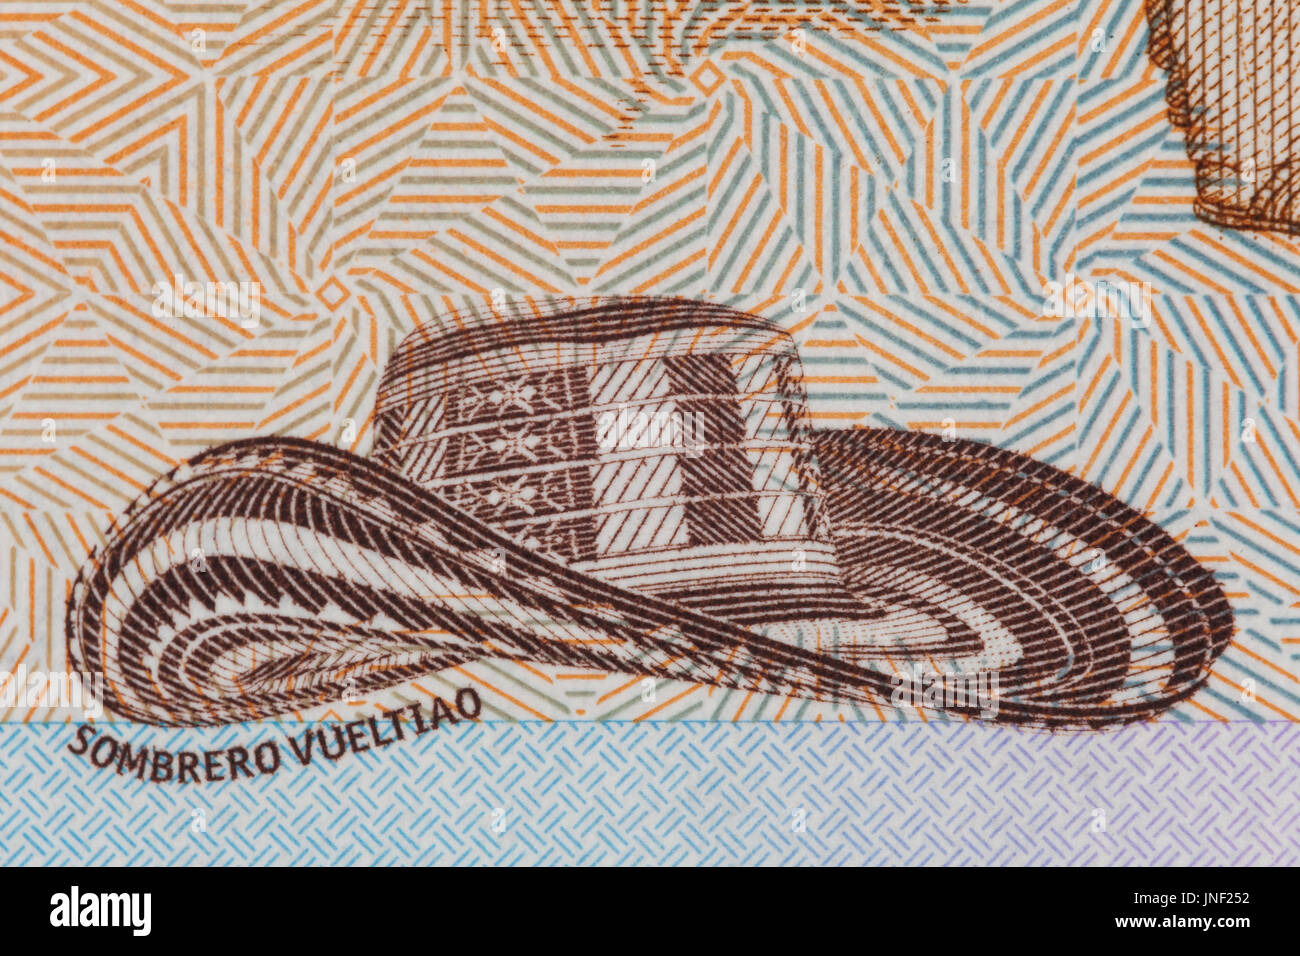 8321dd4b254 Traditional hat from Colombia  Sombrero vueltiao  on the twenty thousand  Colombian pesos bill -